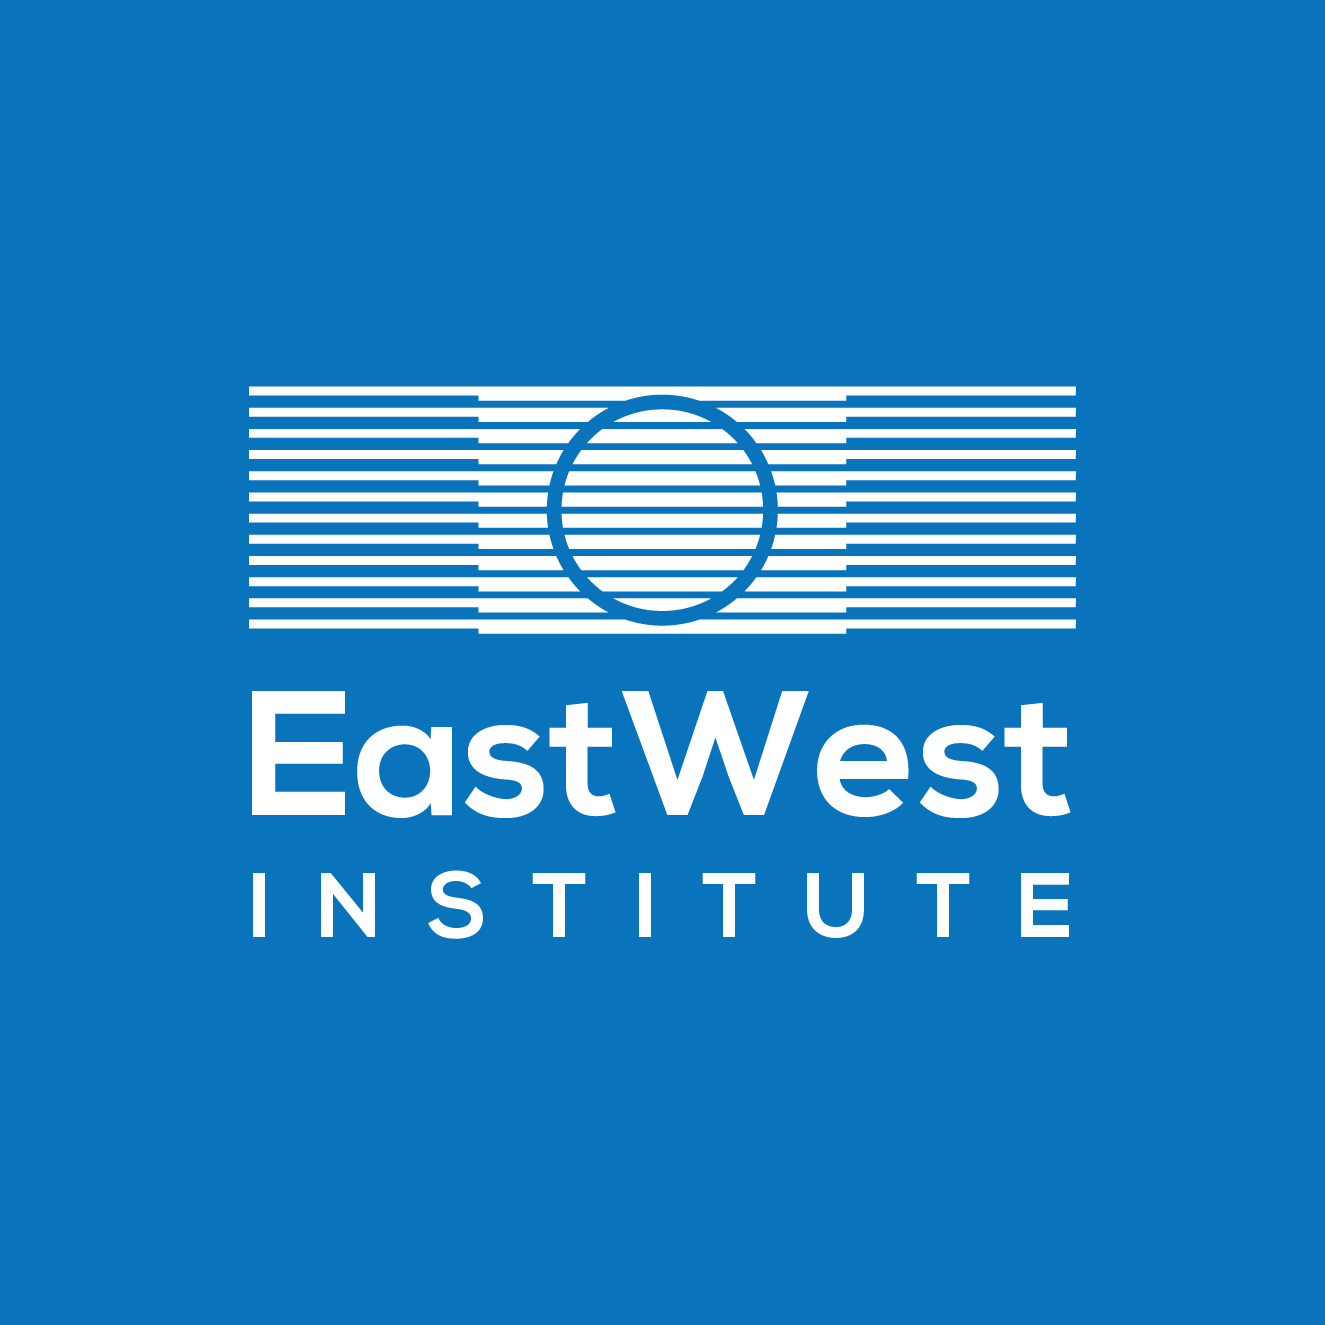 East West Institute (EWI)